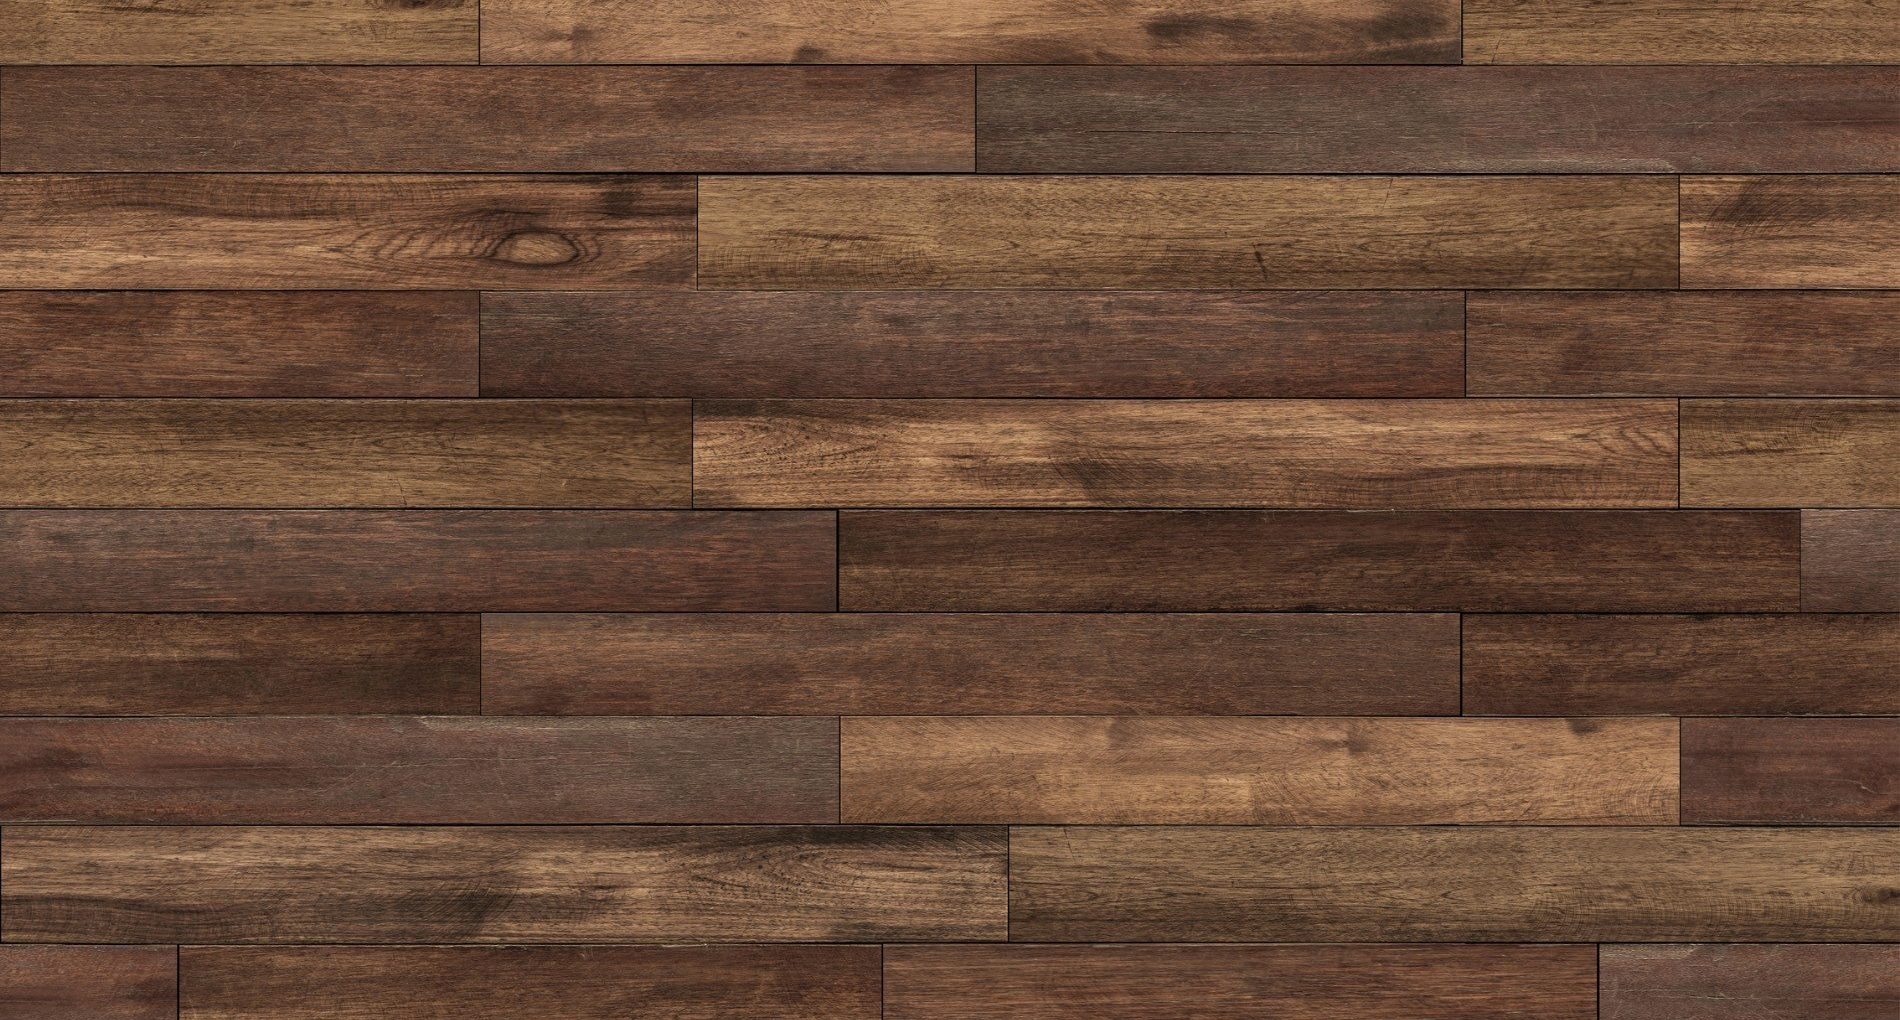 Ways to Keep Your Vancouver Custom Home Wood Floors Clean